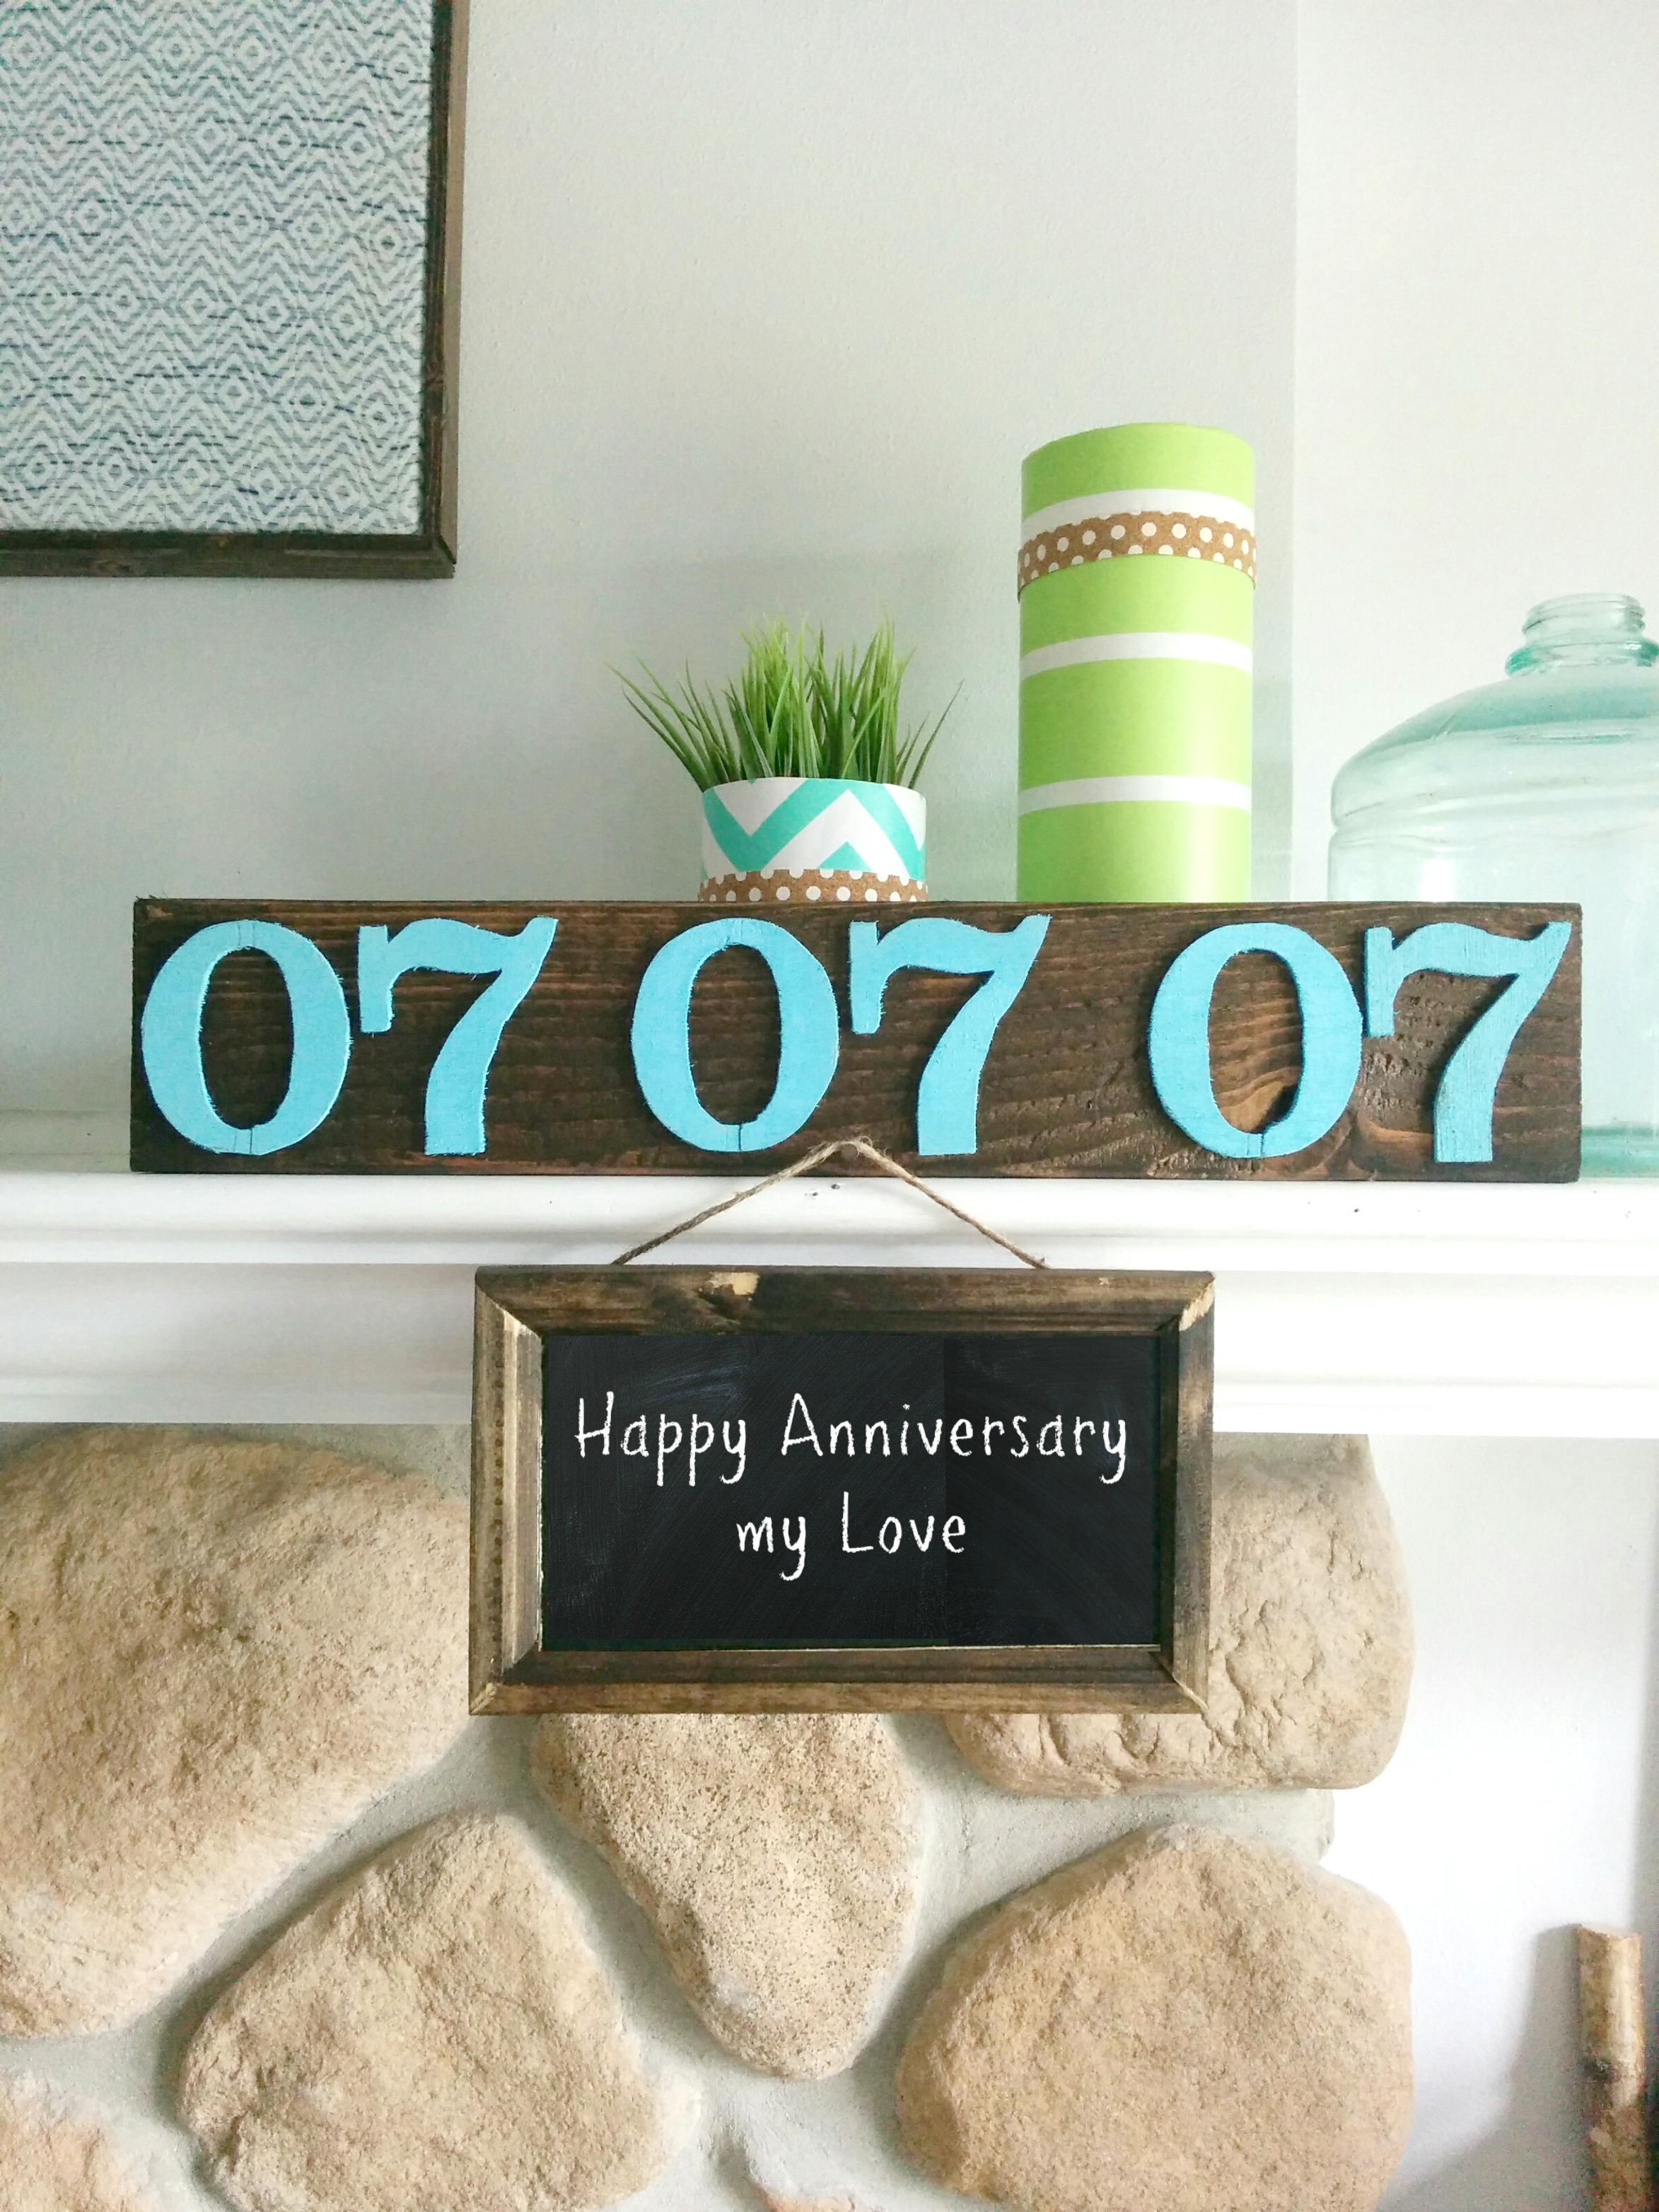 DIY and low cost anniversary gift ideas • Our House Now a Home